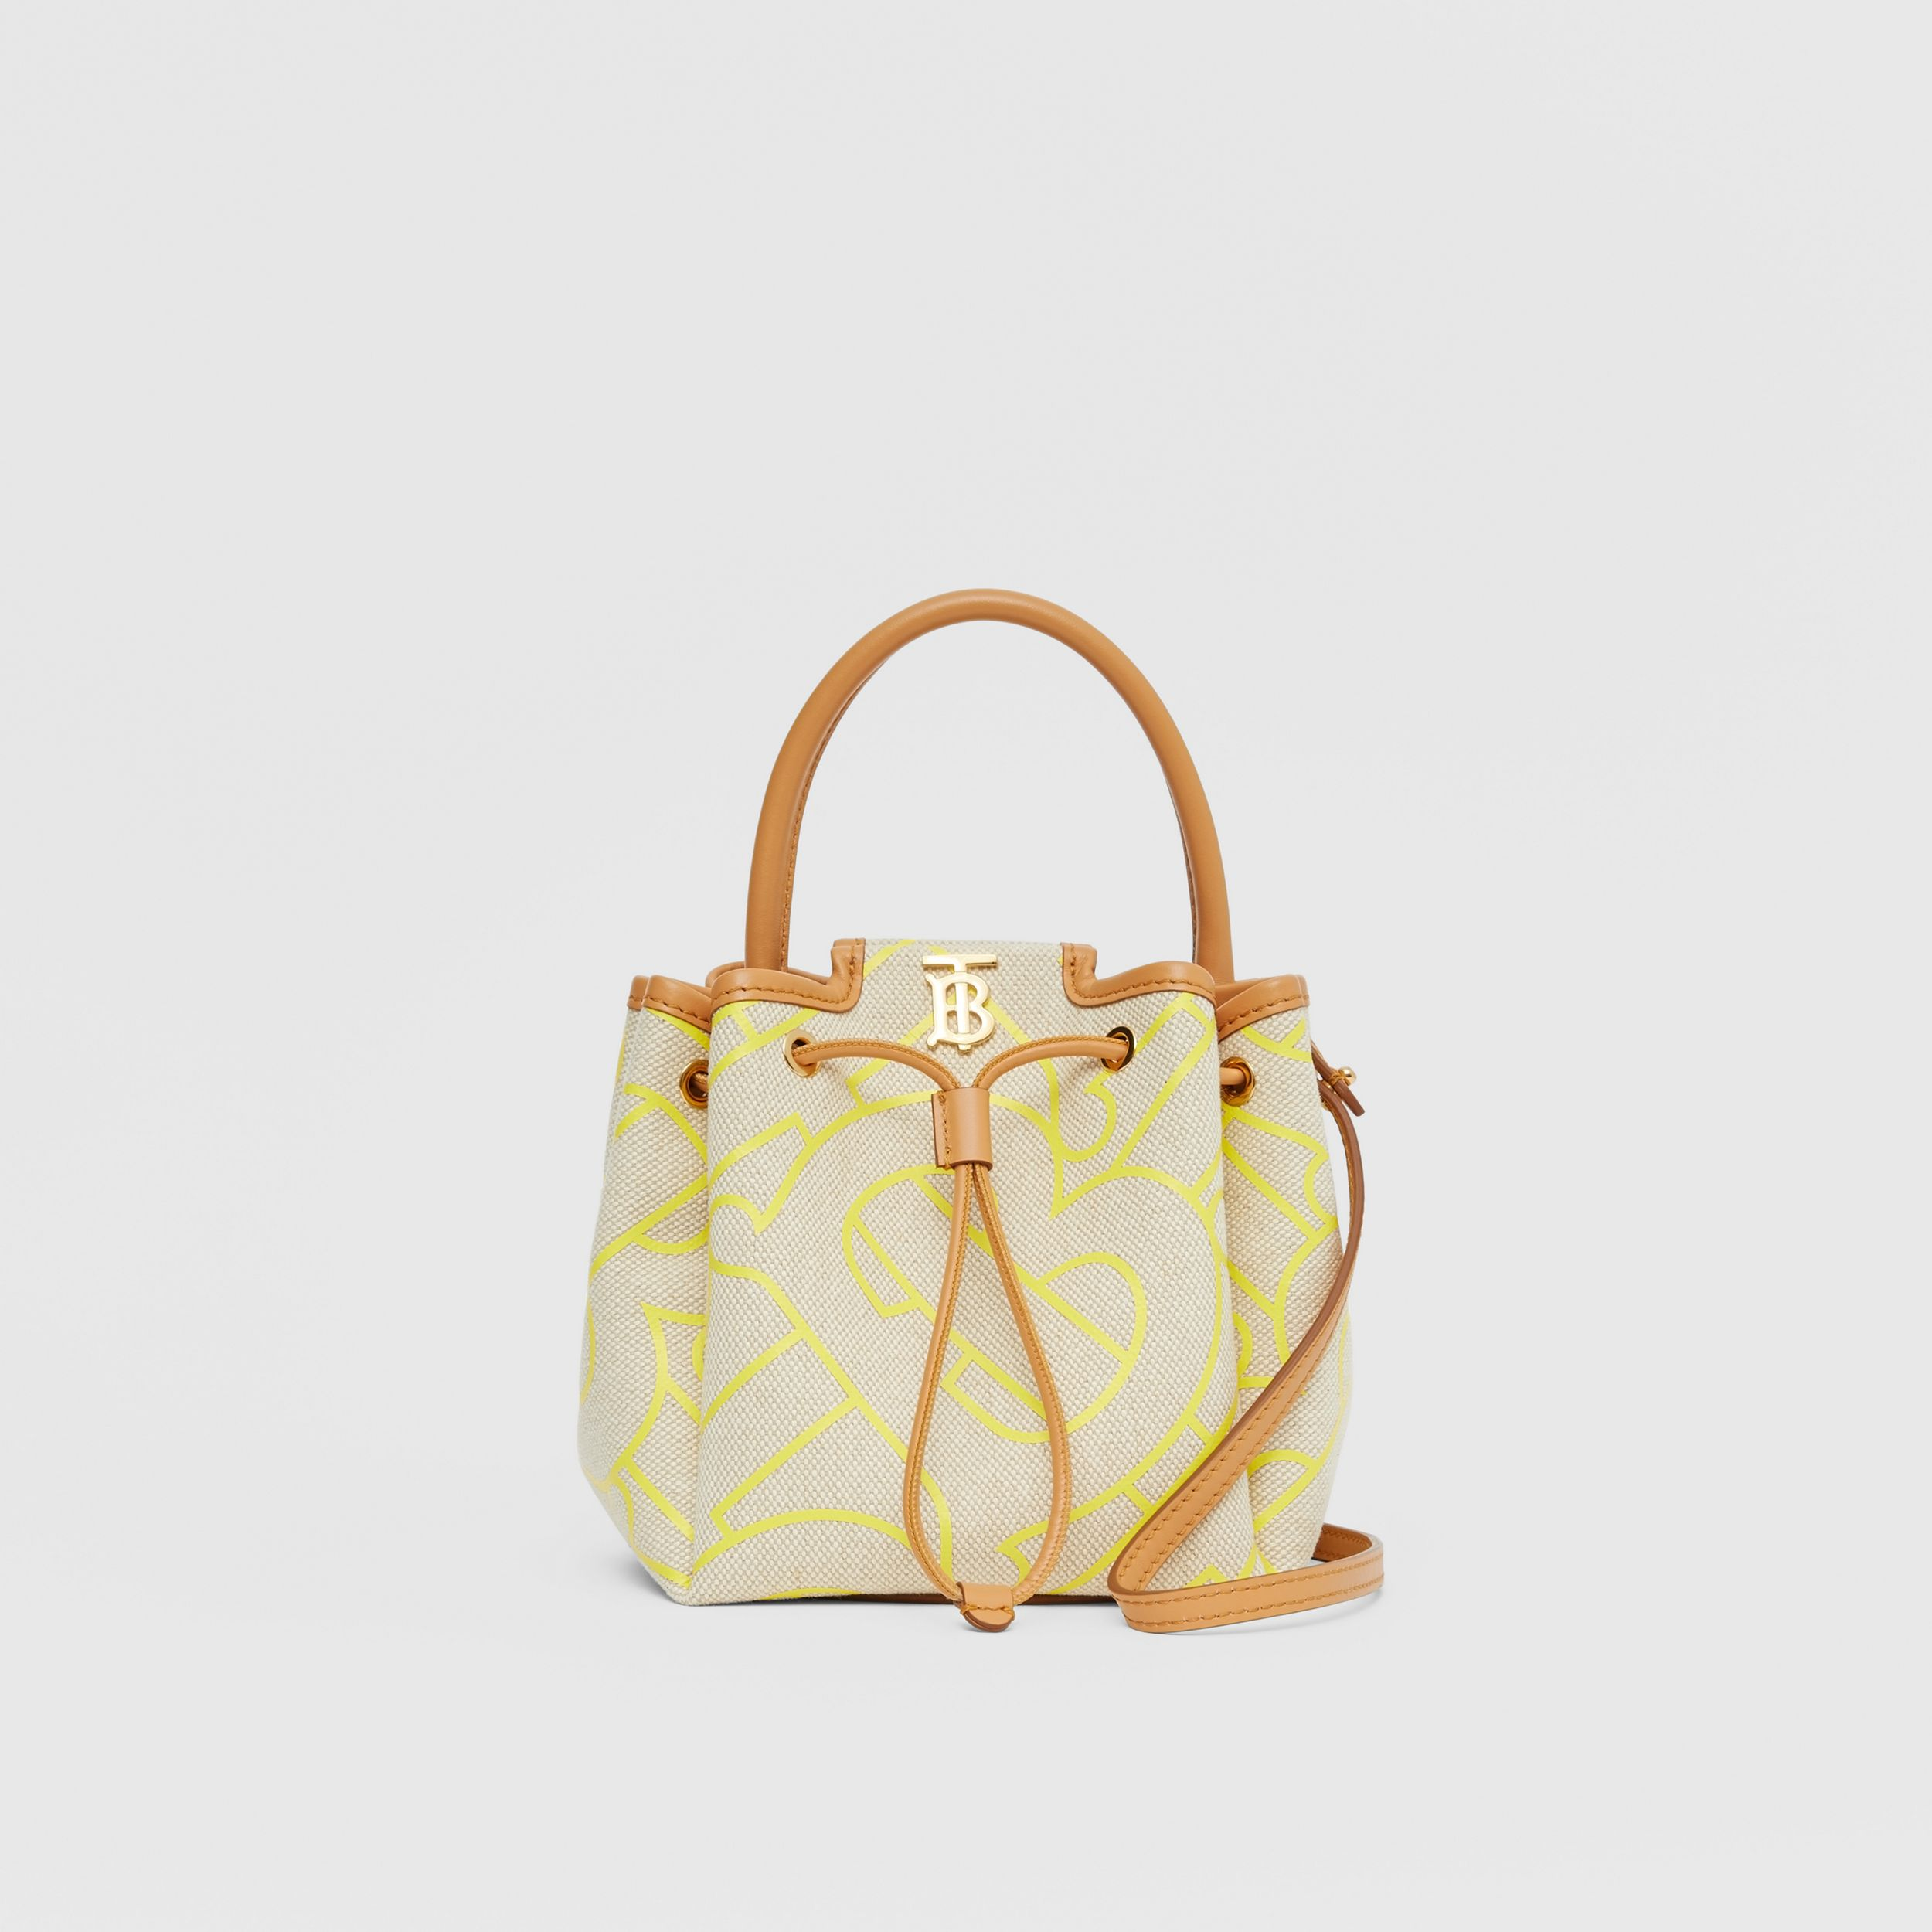 Monogram Motif Canvas and Leather Bucket Bag in Natural/yellow - Women | Burberry - 1